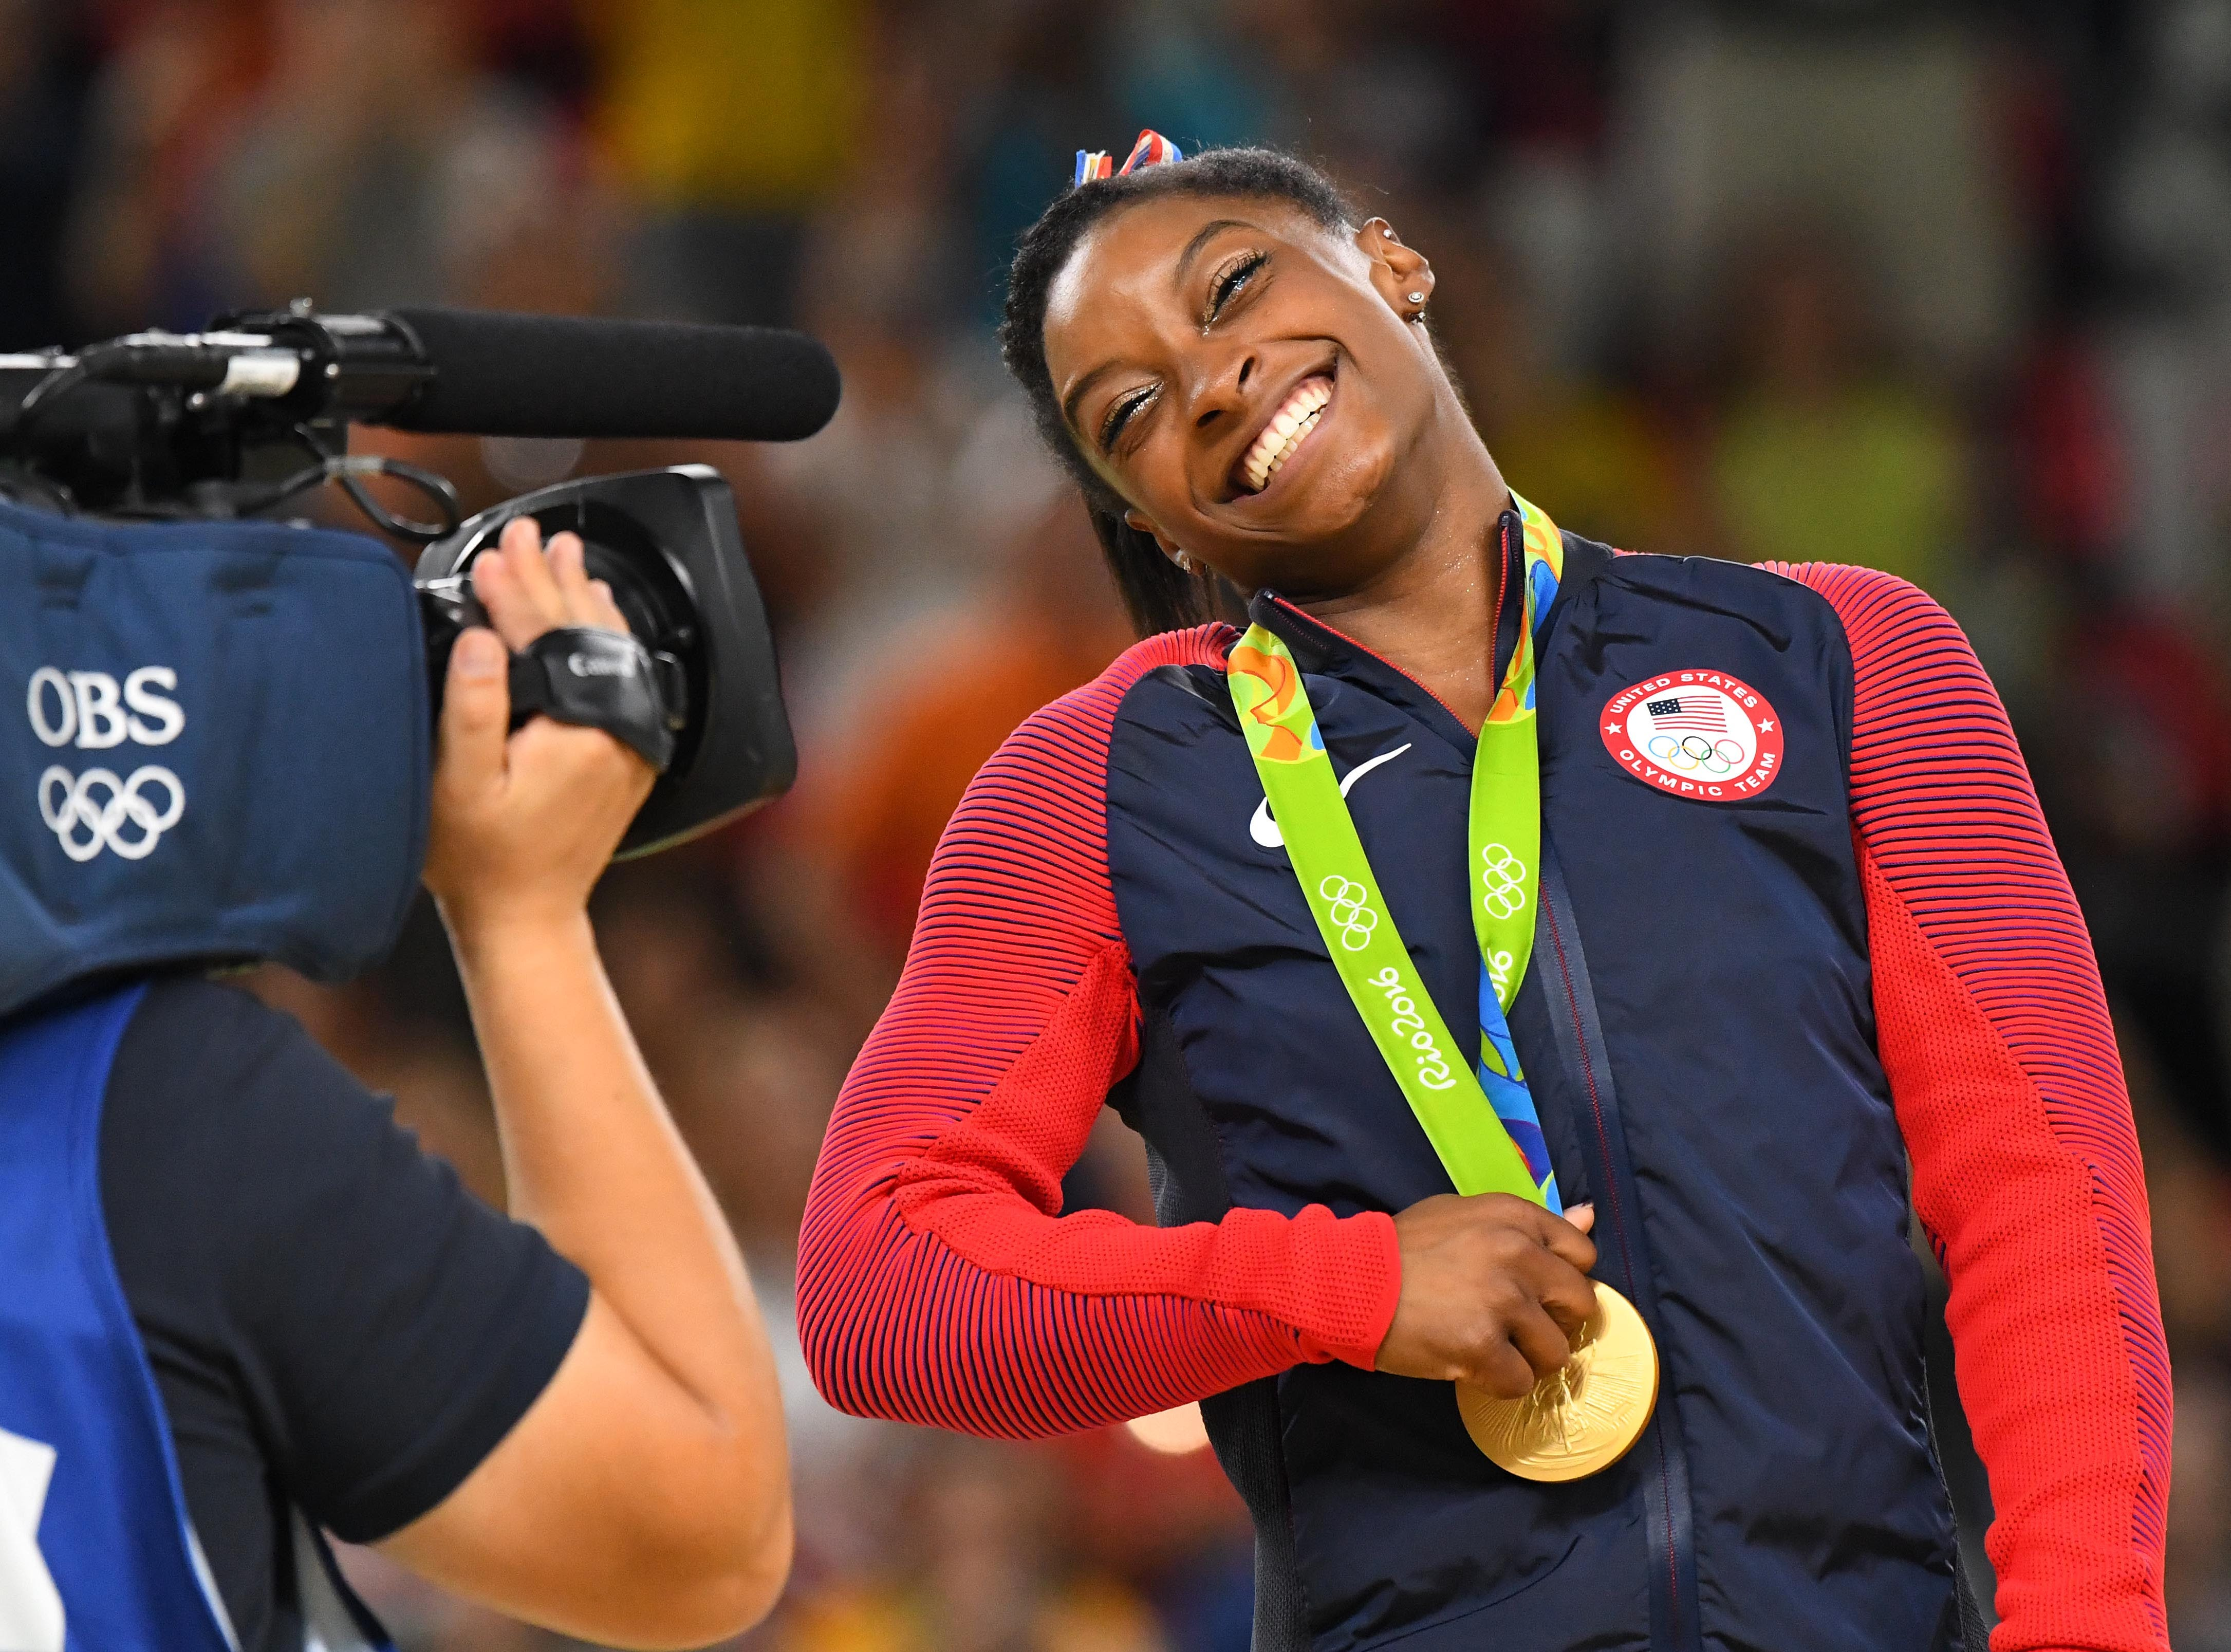 At the 2016 Olympics in Rio, Simone Biles celebrates after winning a gold medal in women's floor exercise.